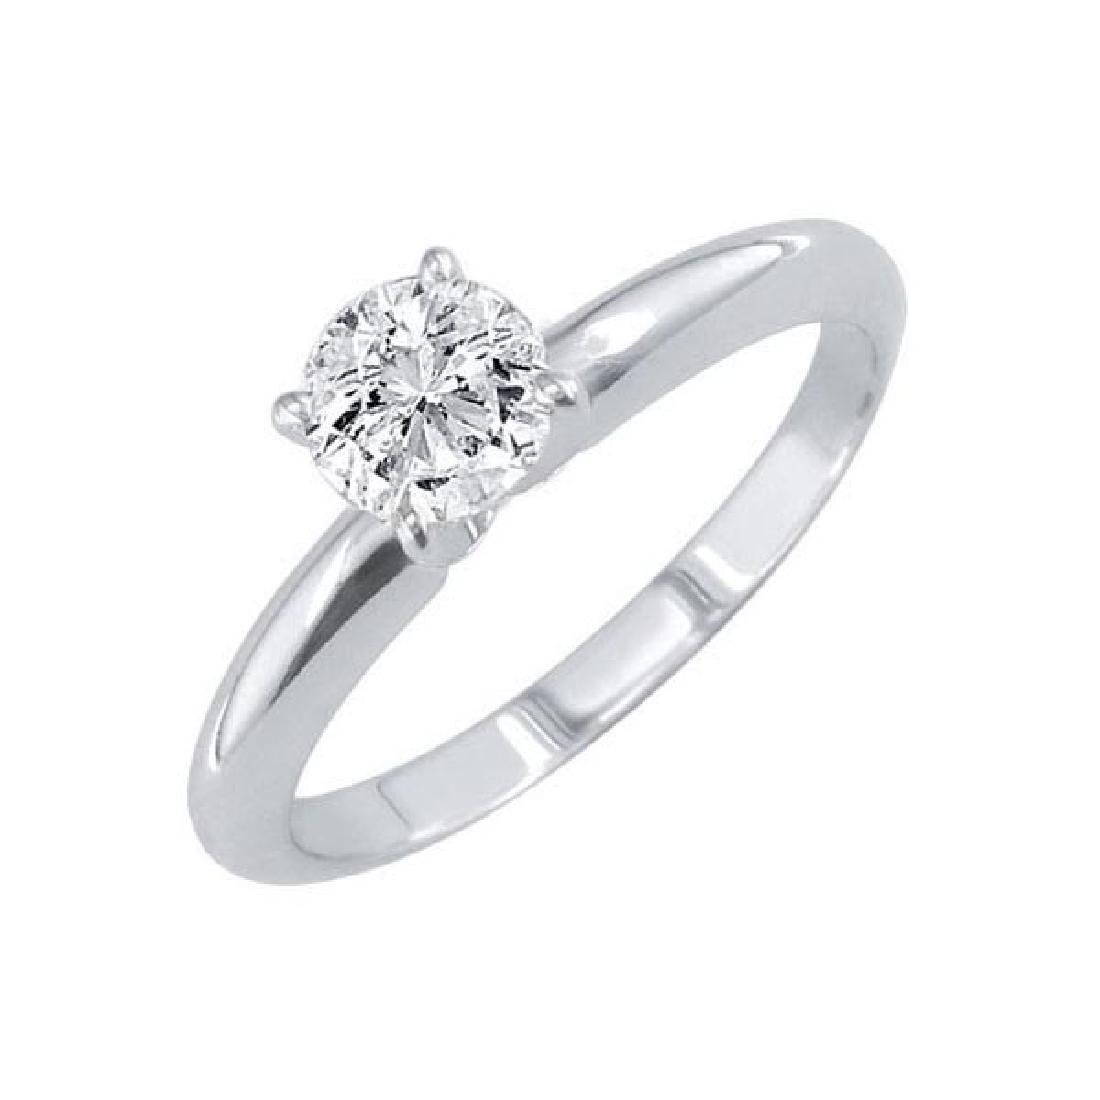 Certified 1.31 CTW Round Diamond Solitaire 14k Ring D/S